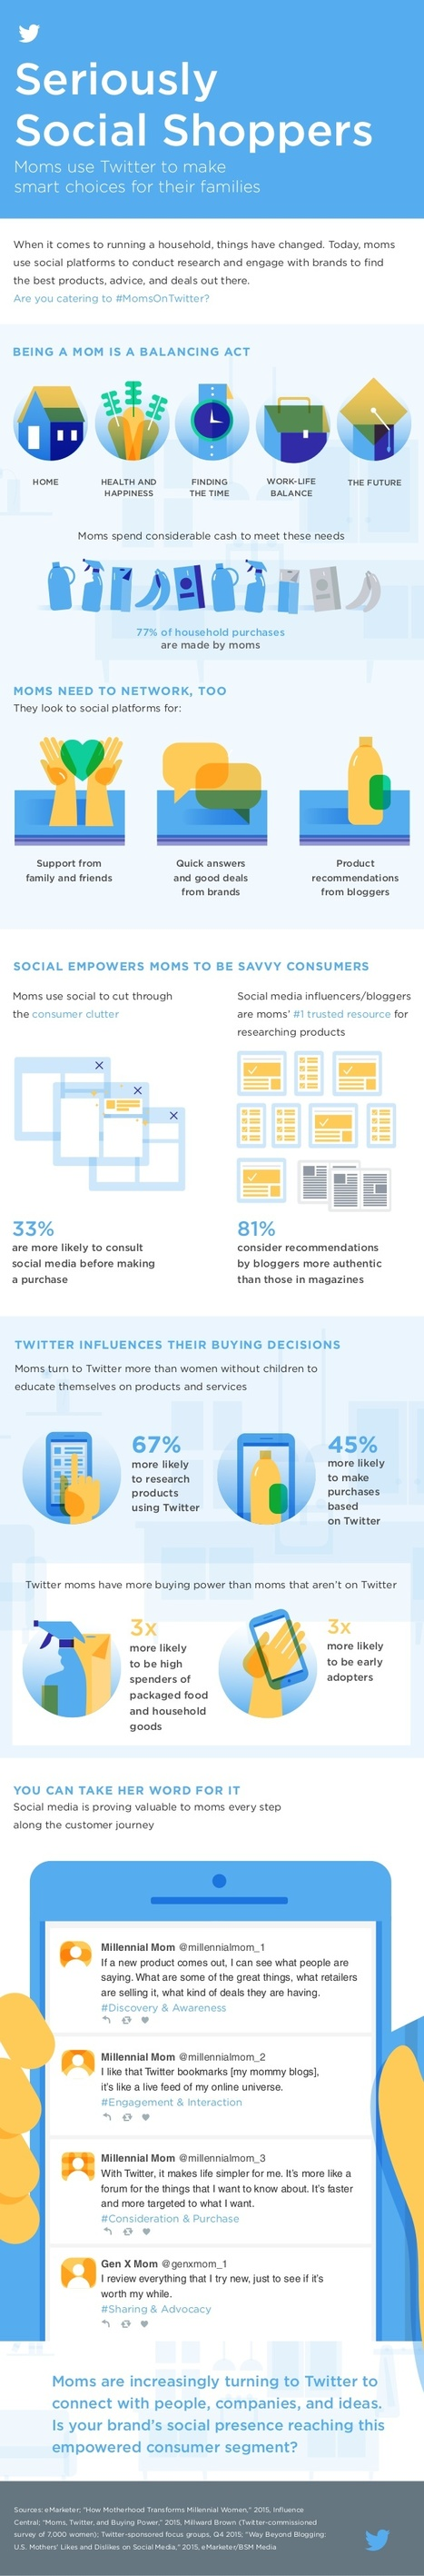 Moms Who Use Twitter Are More Likely to Find Recommendations Authentic #Infographic | Business Support | Scoop.it